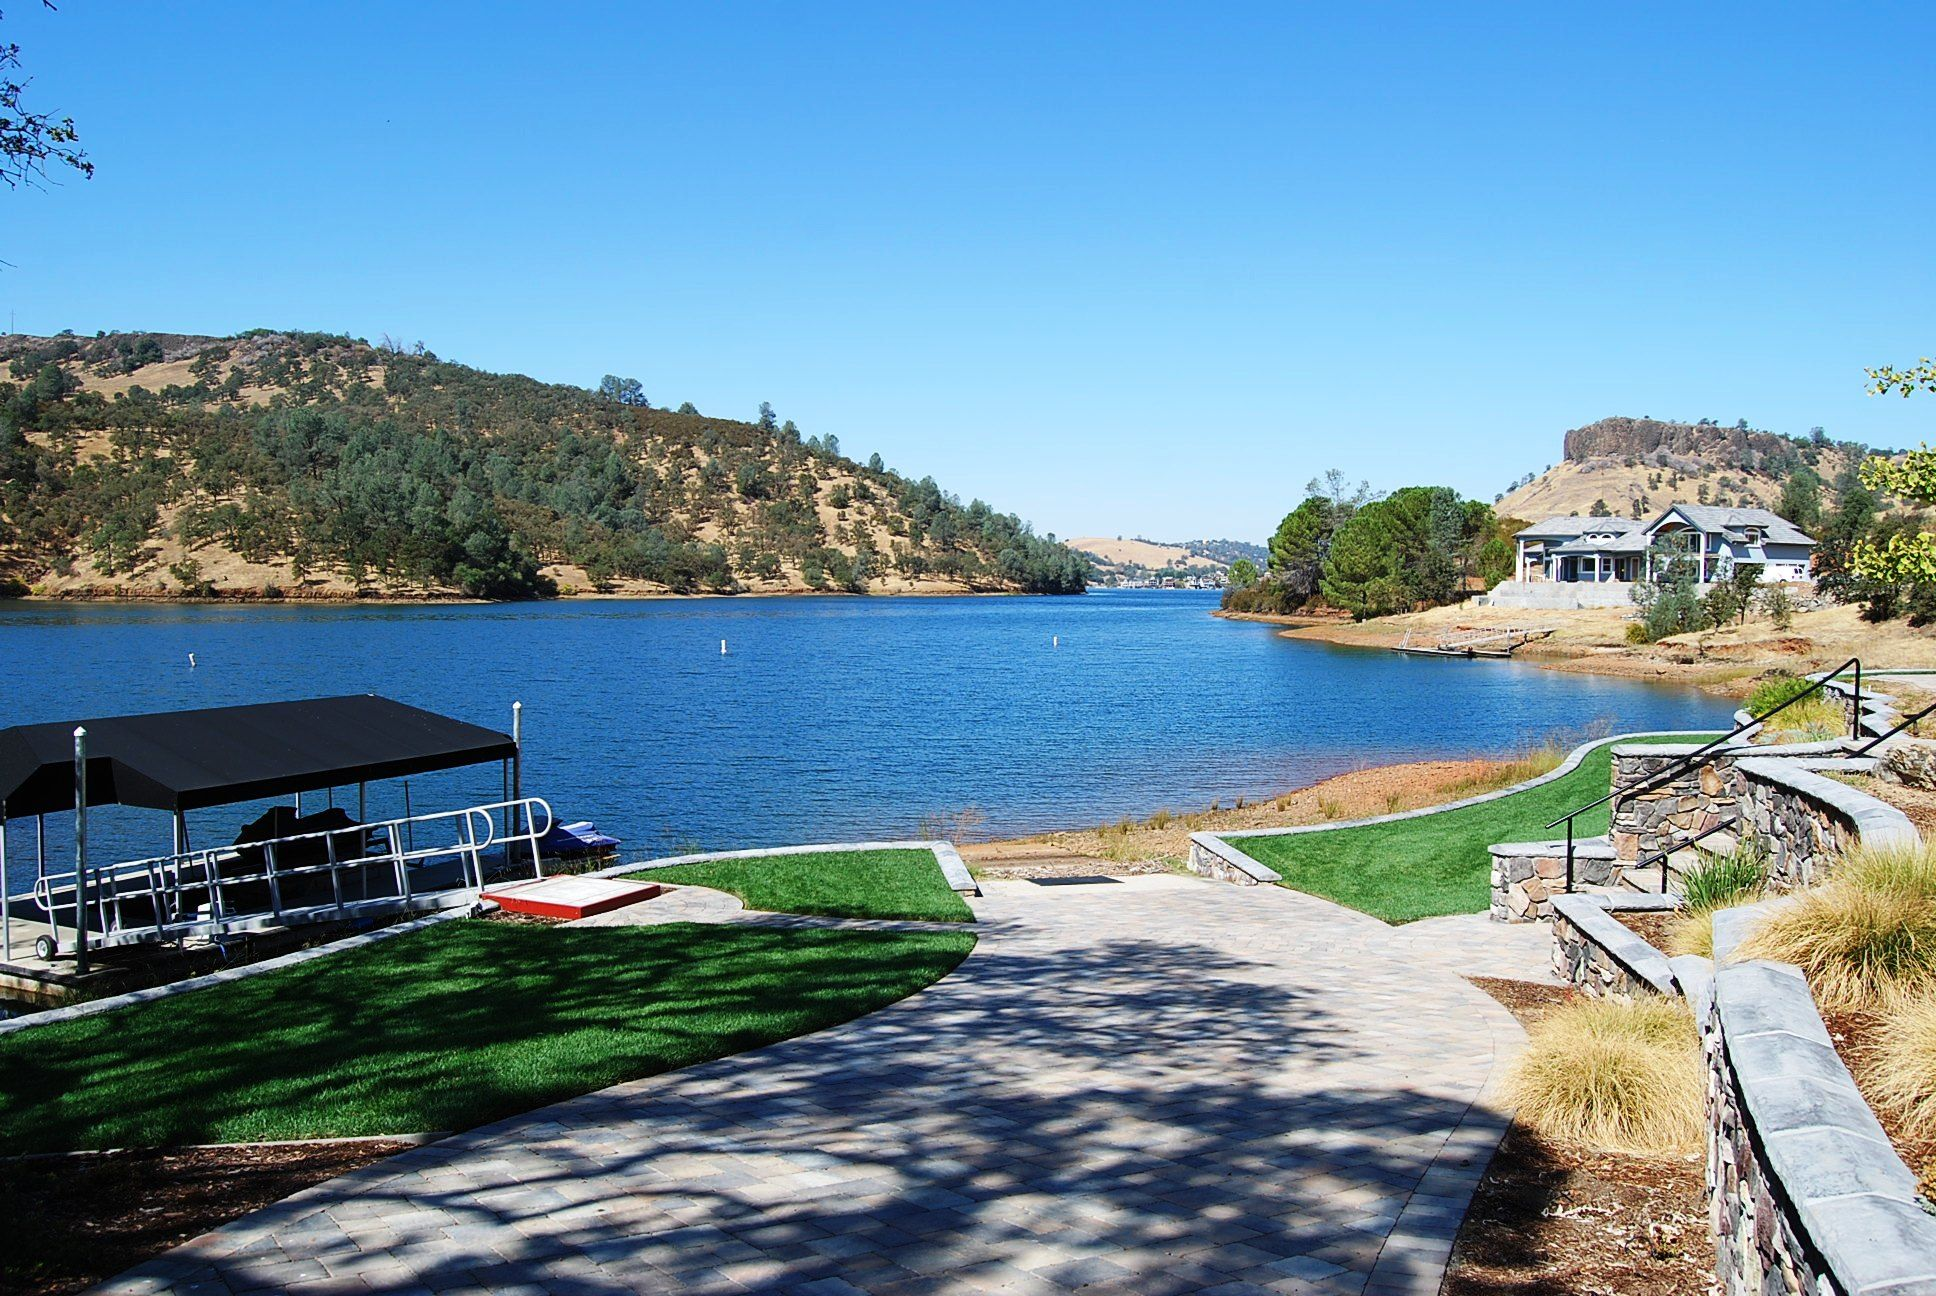 Lake tulloch camping pinterest lakes and vacation for Lake tulloch fishing